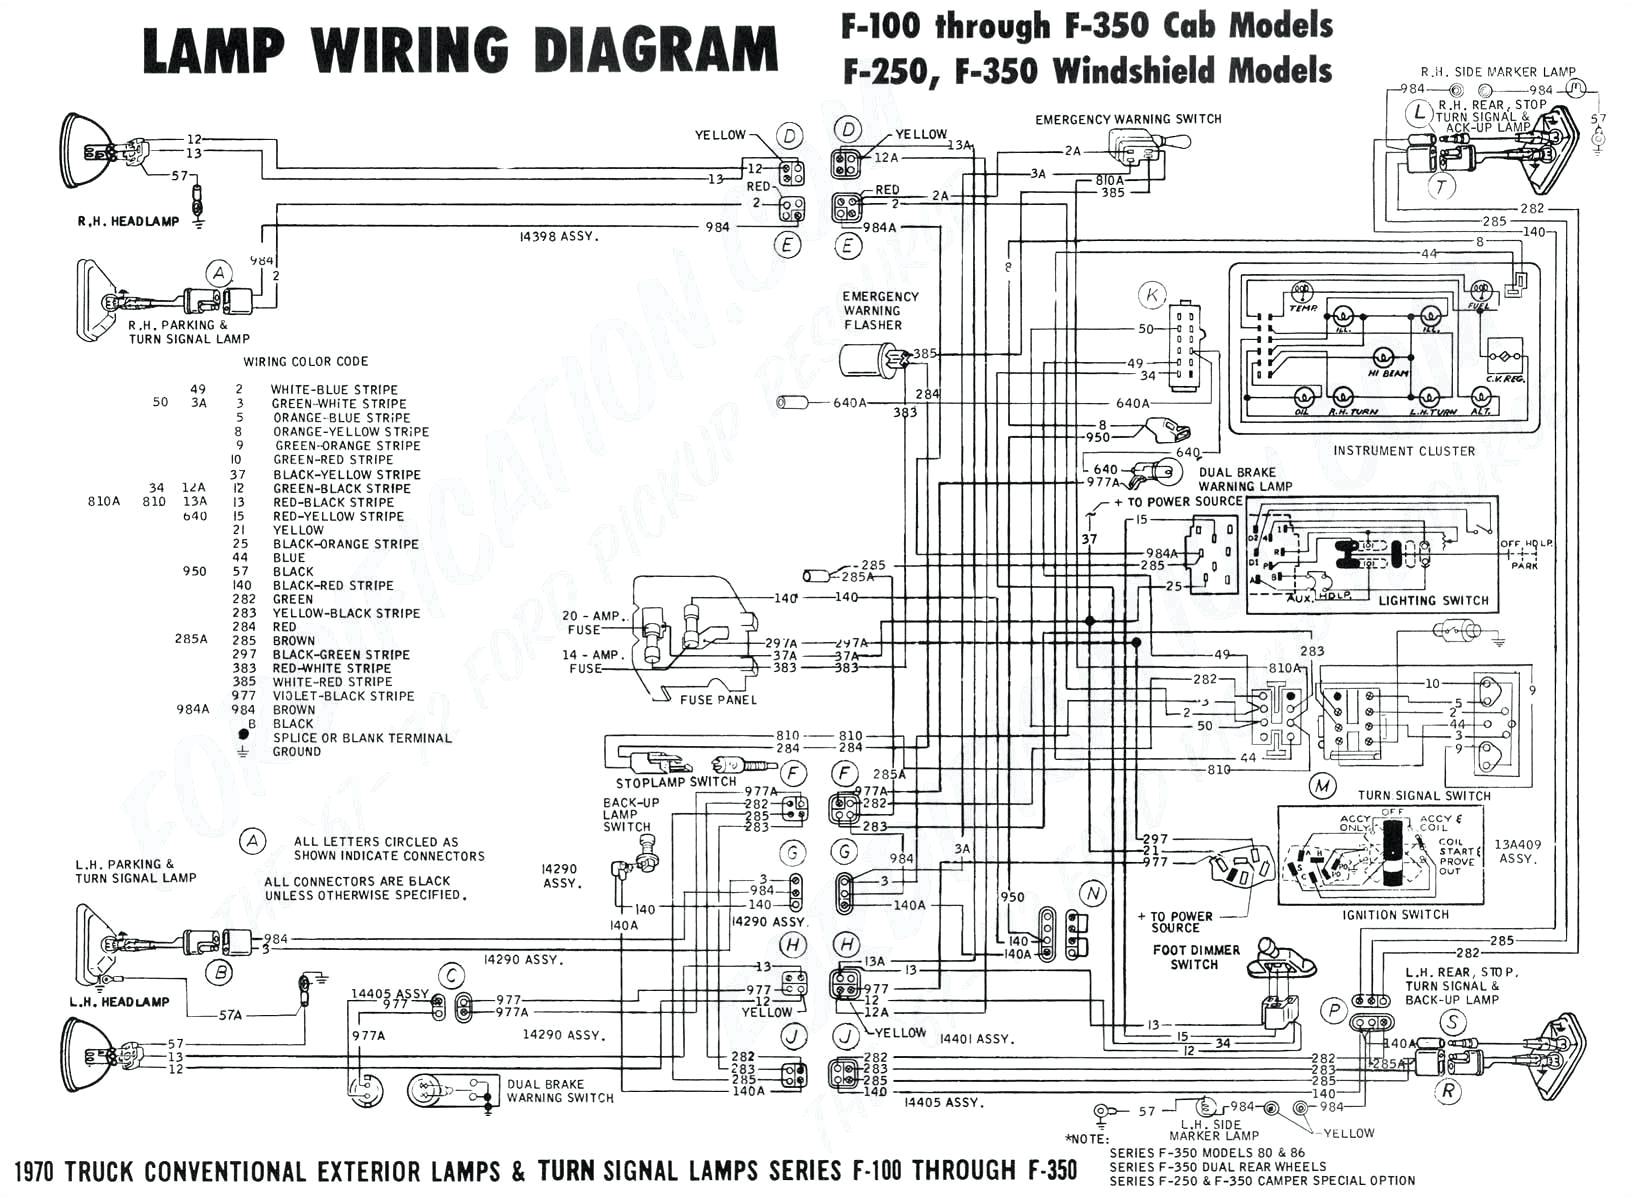 2008 ford F250 Power Mirror Wiring Diagram Kenwood Radio Mic Wiring Diagram Wiring Library